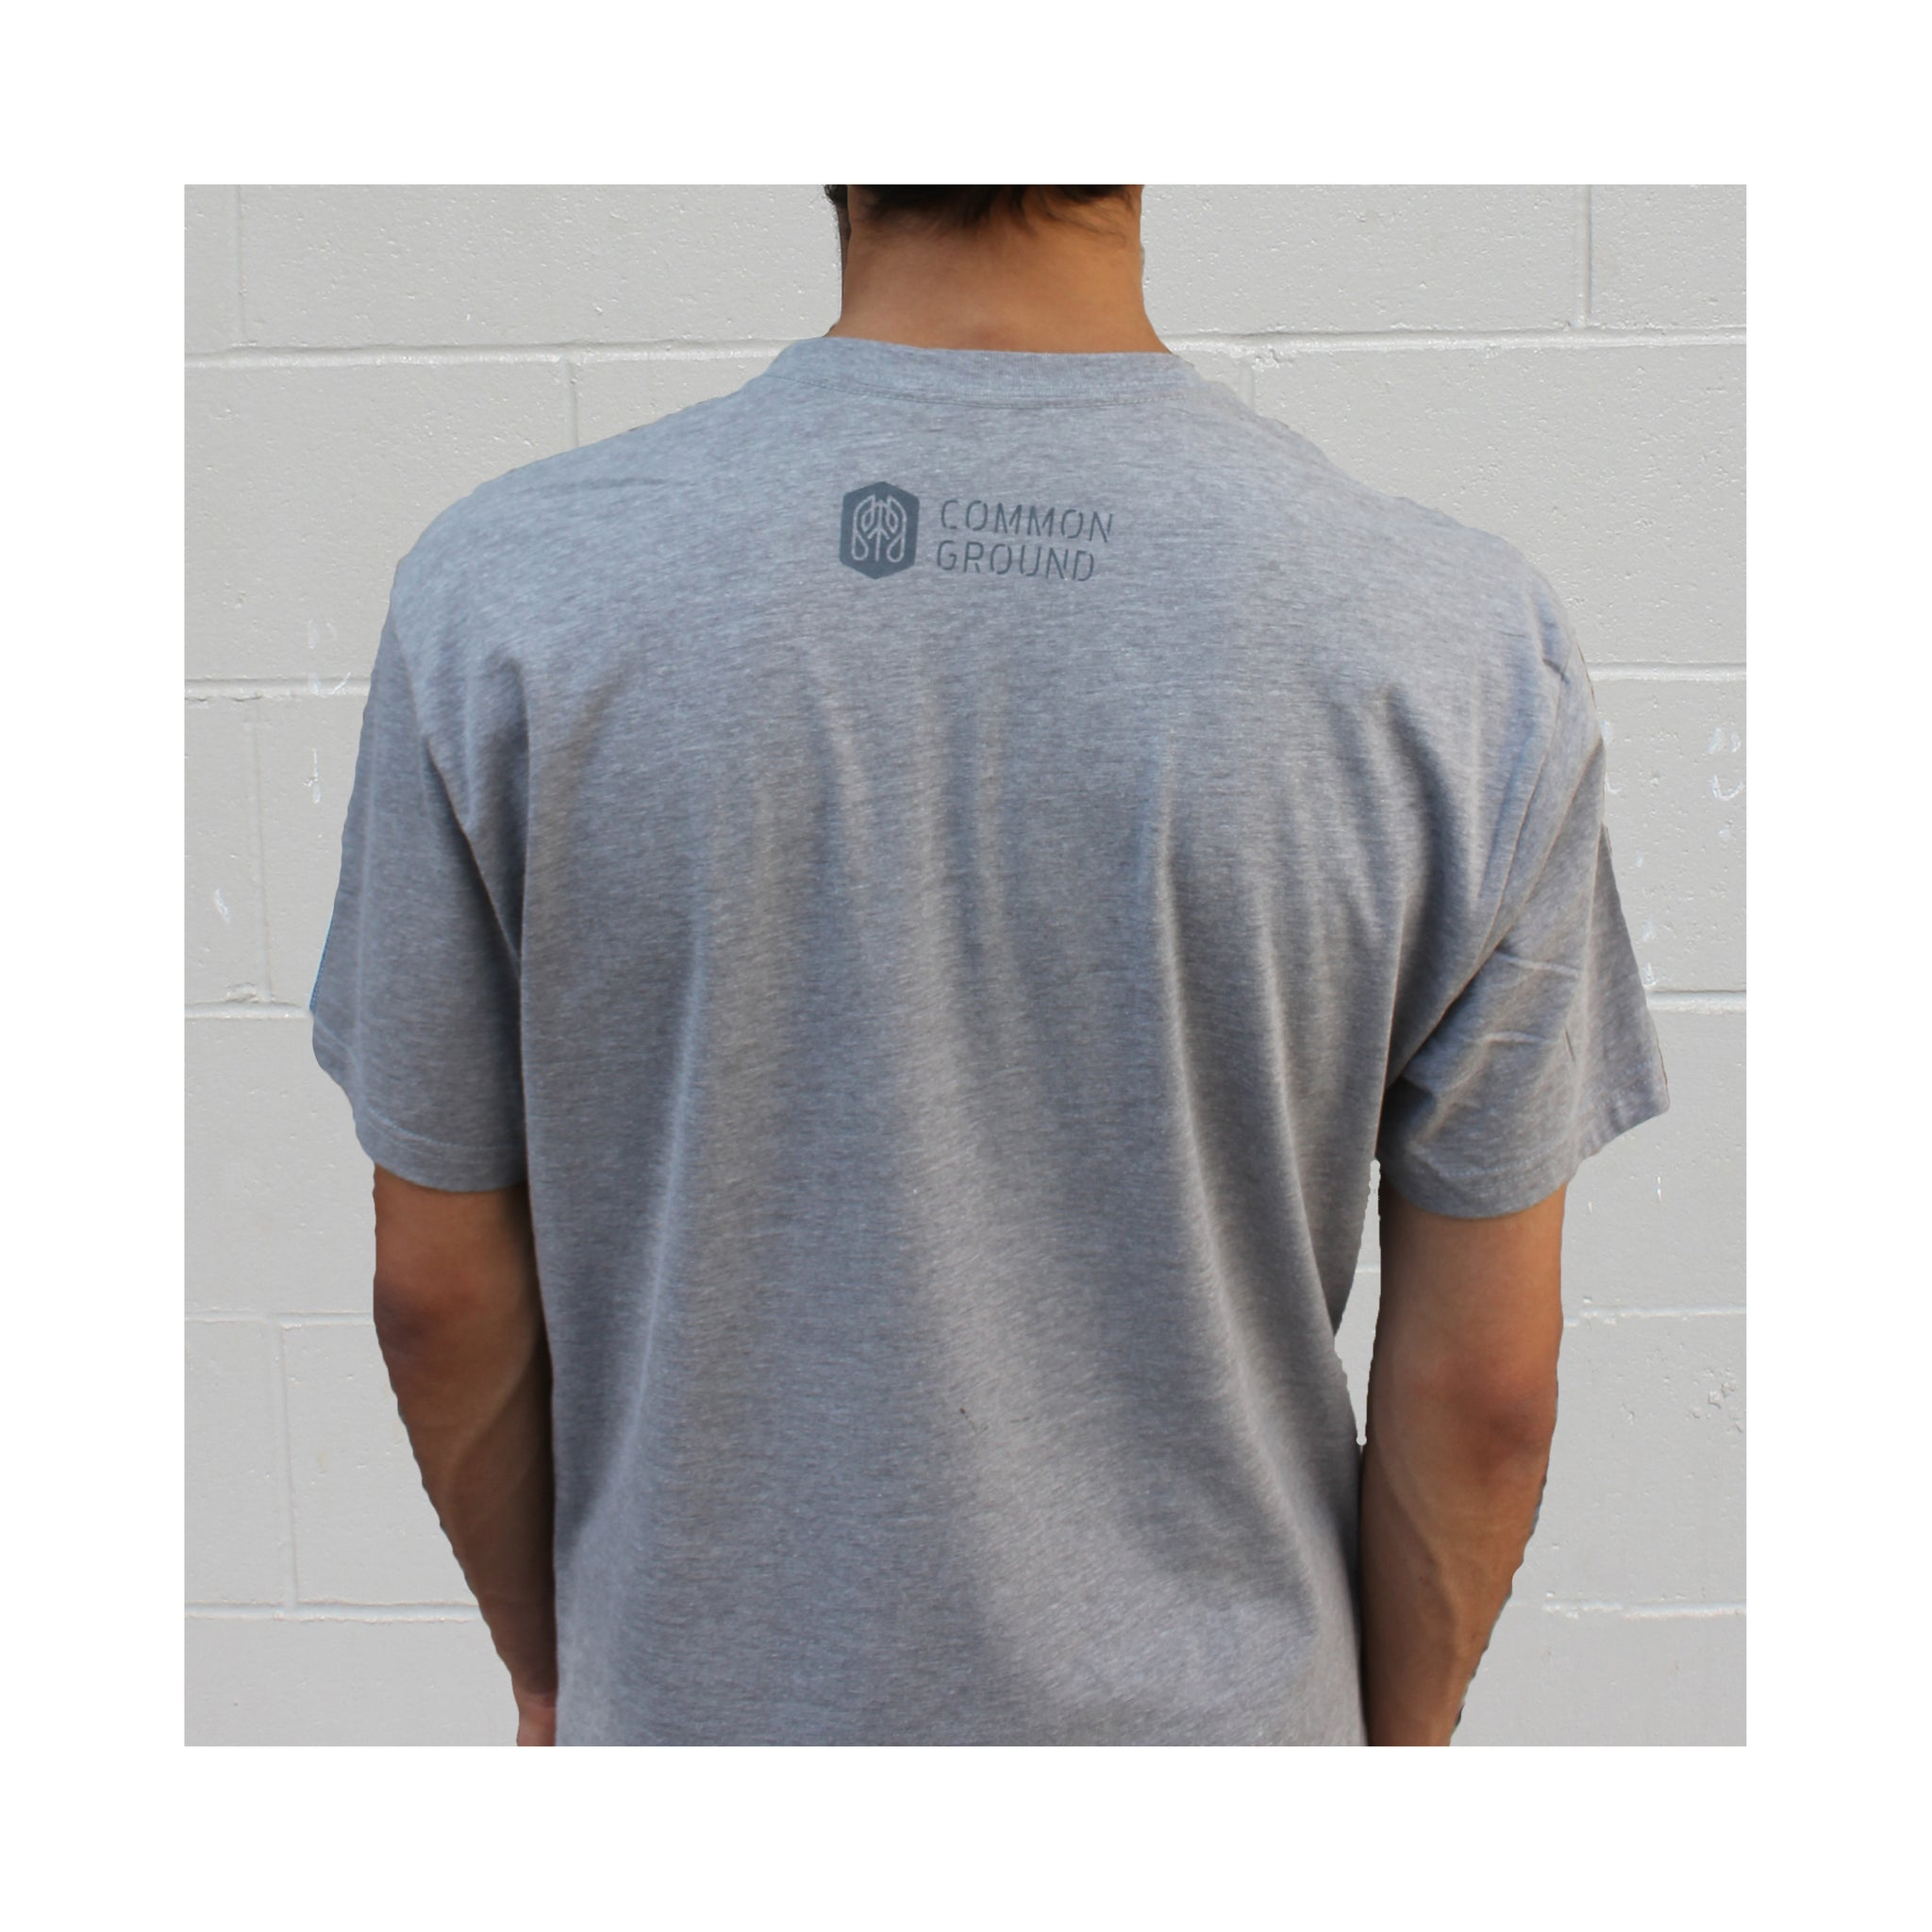 Dark_Heather_Gray - Common Ground Badge T shirt Back on Model